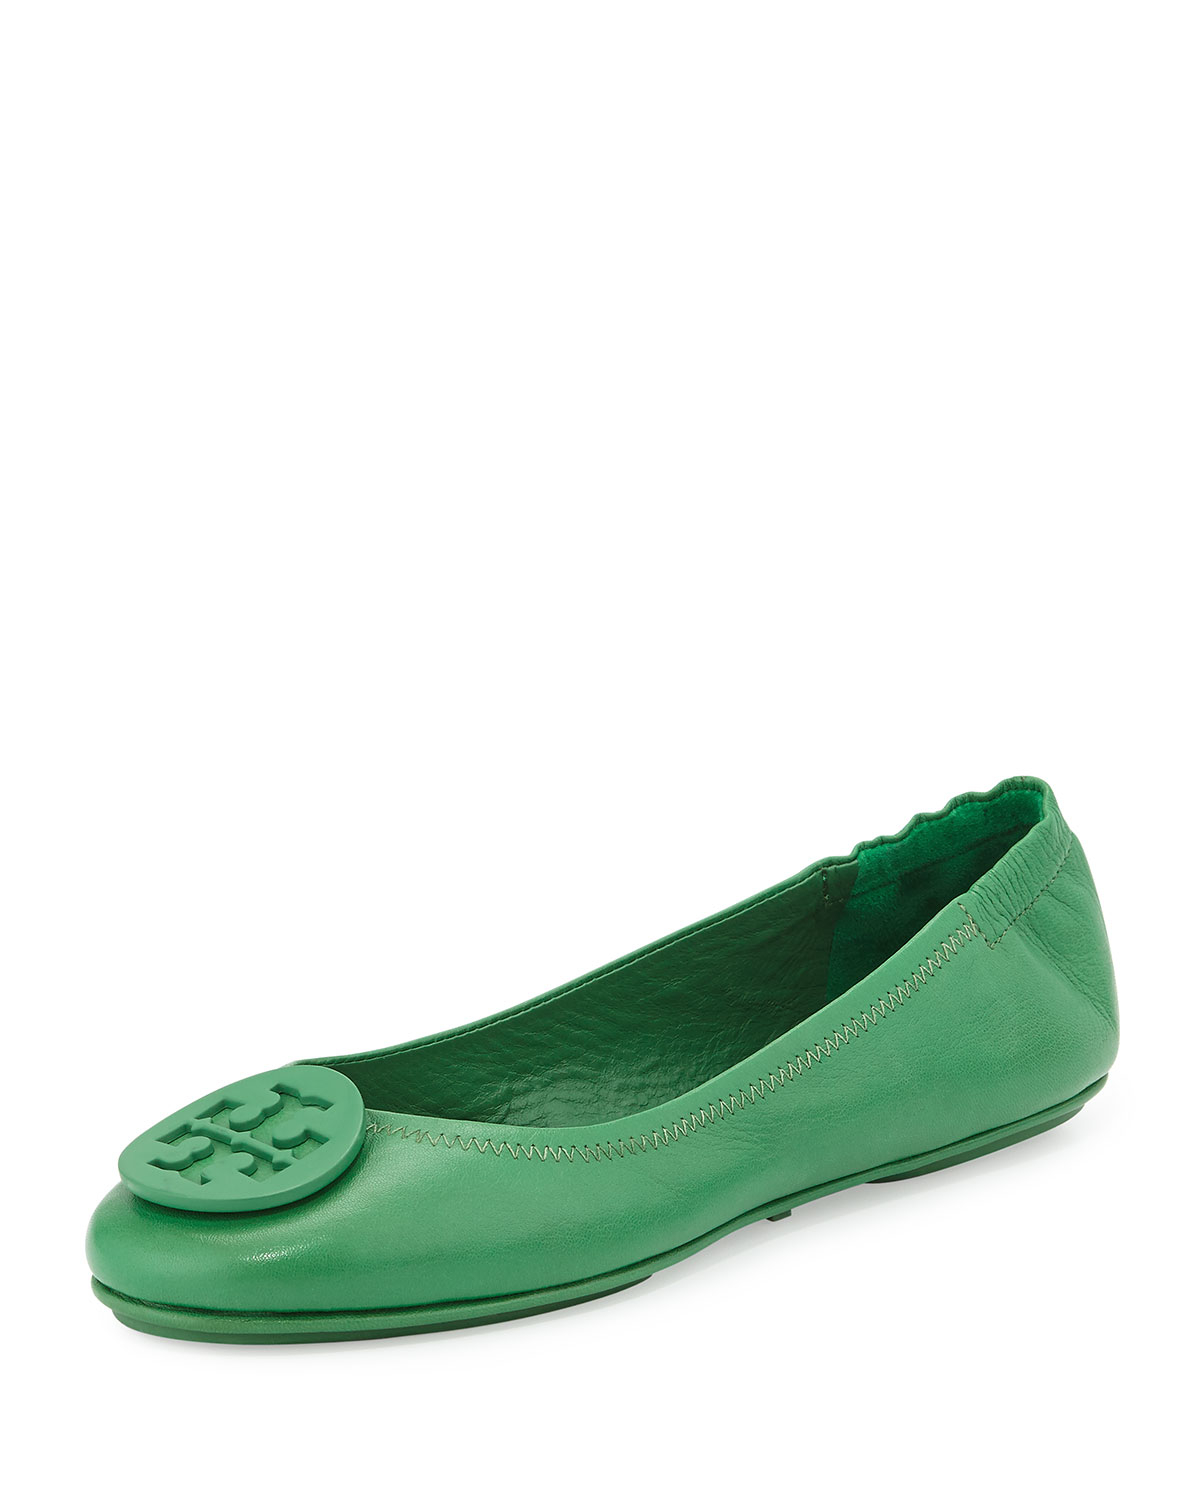 Packable Flat Shoes For Women